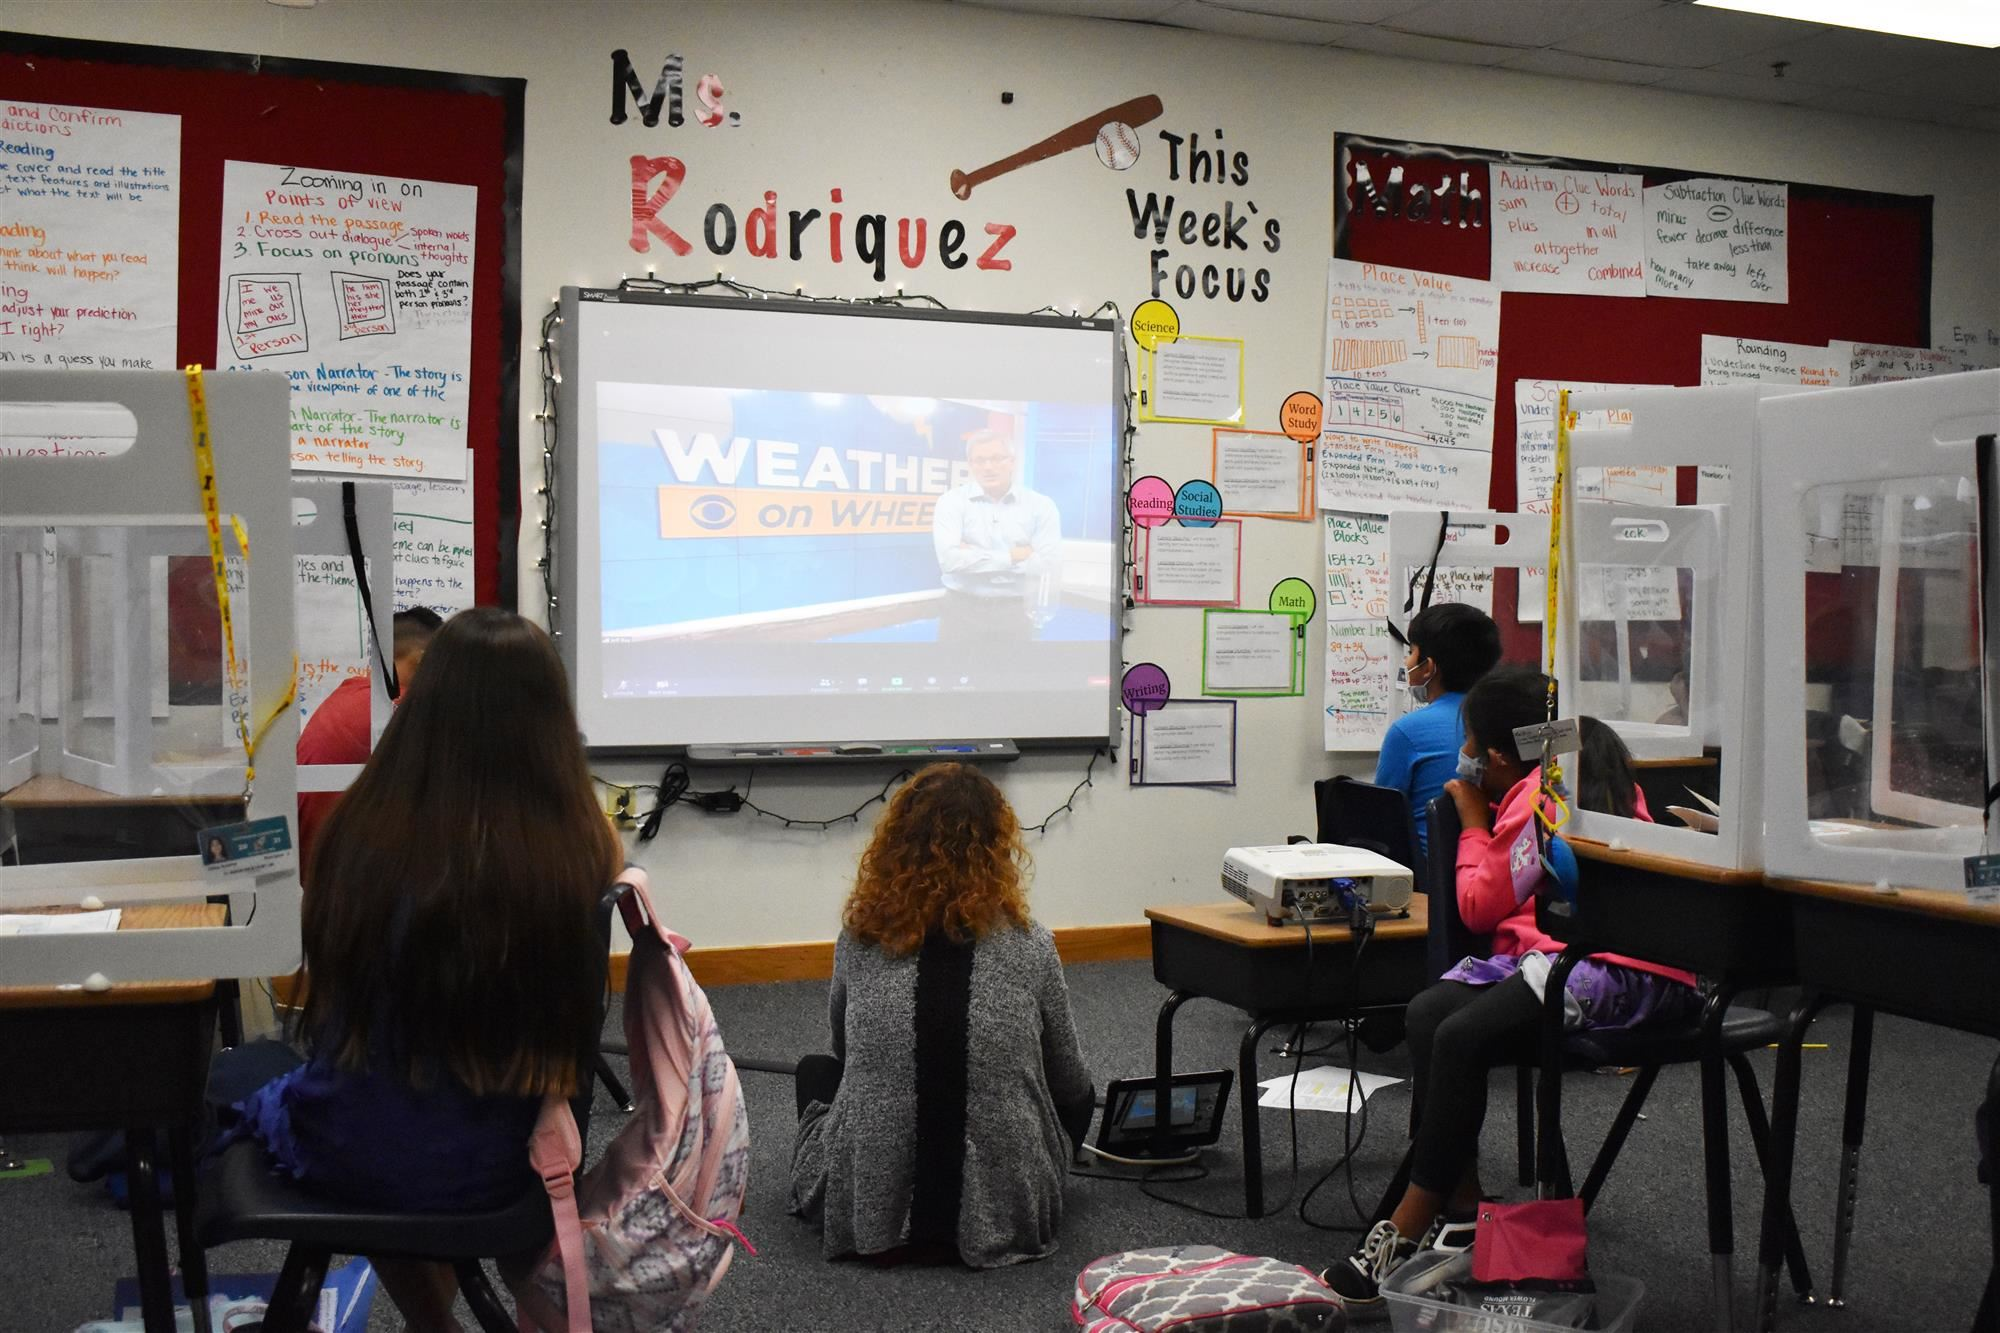 Weather on Wheels presentation in class